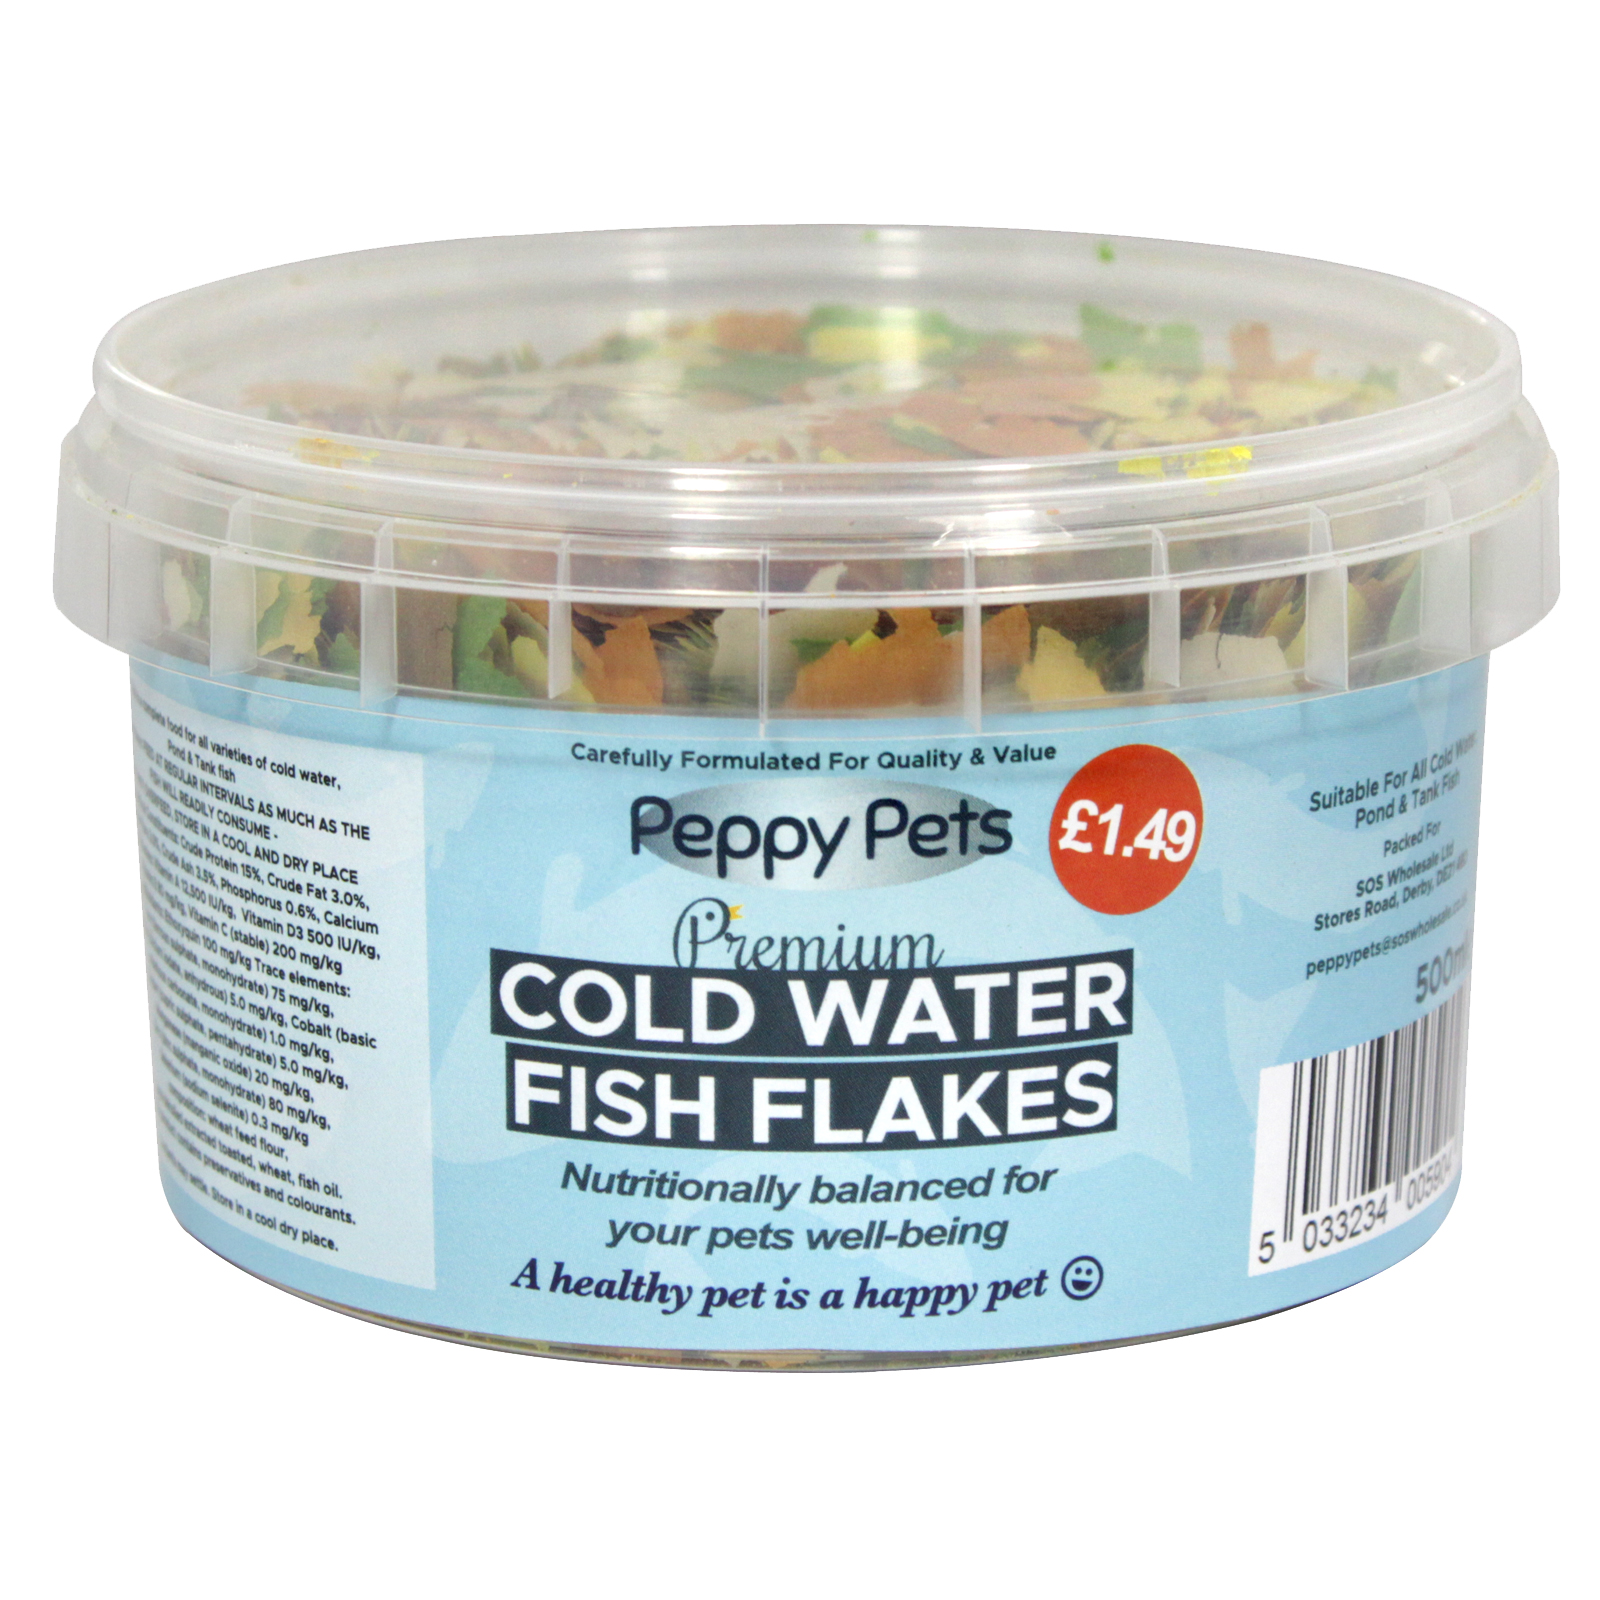 PEPPY PETS COLDWATER GOLDFISH FLAKES PM£1.49 500ML